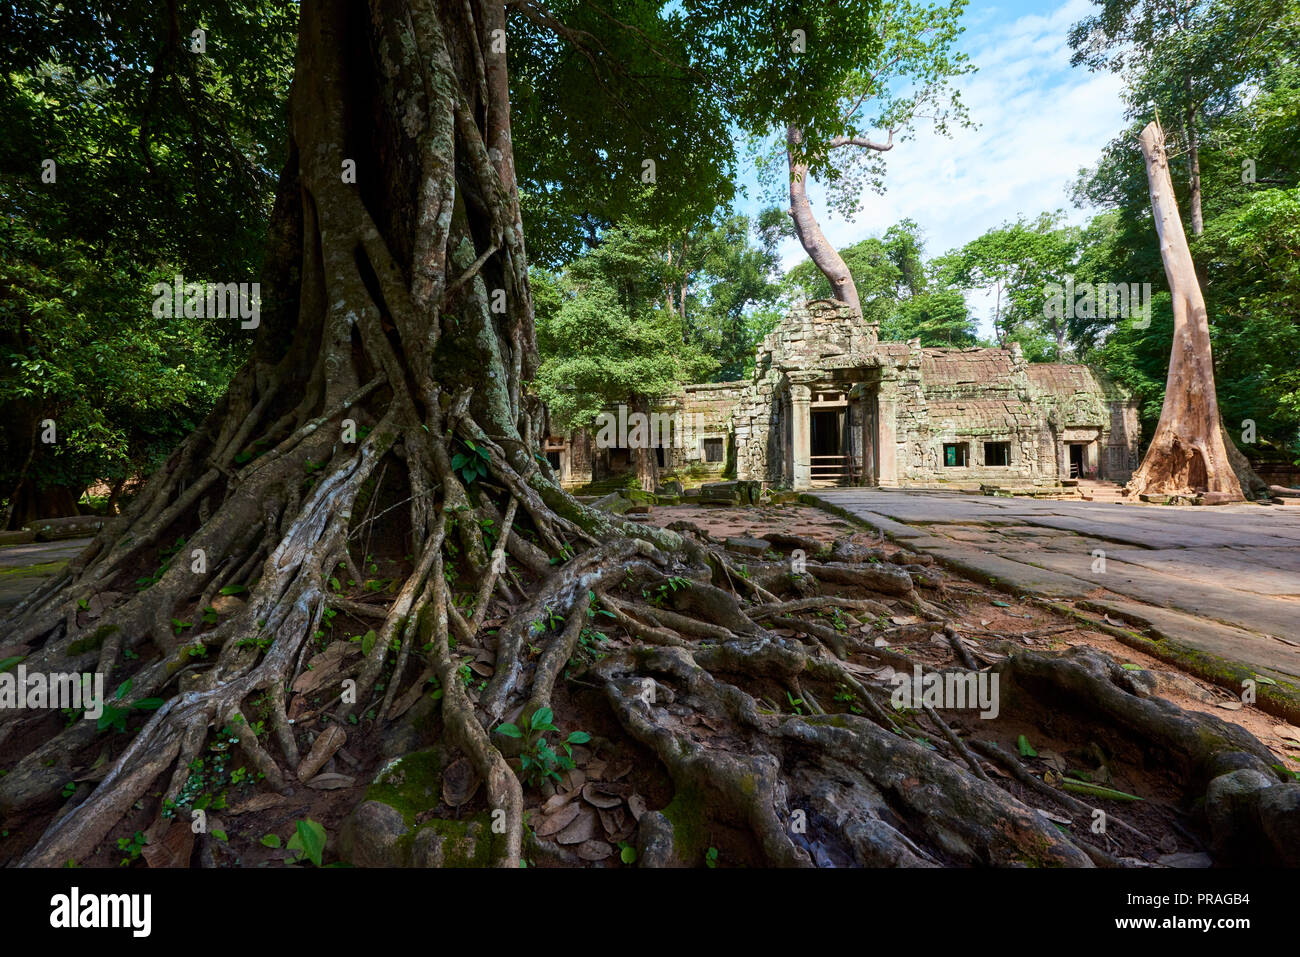 Banteay Kdei ruins in Angkor Wat. The Angkor Wat complex, Built during the Khmer Empire age, located in Siem Reap, Cambodia, is the largest religious  - Stock Image